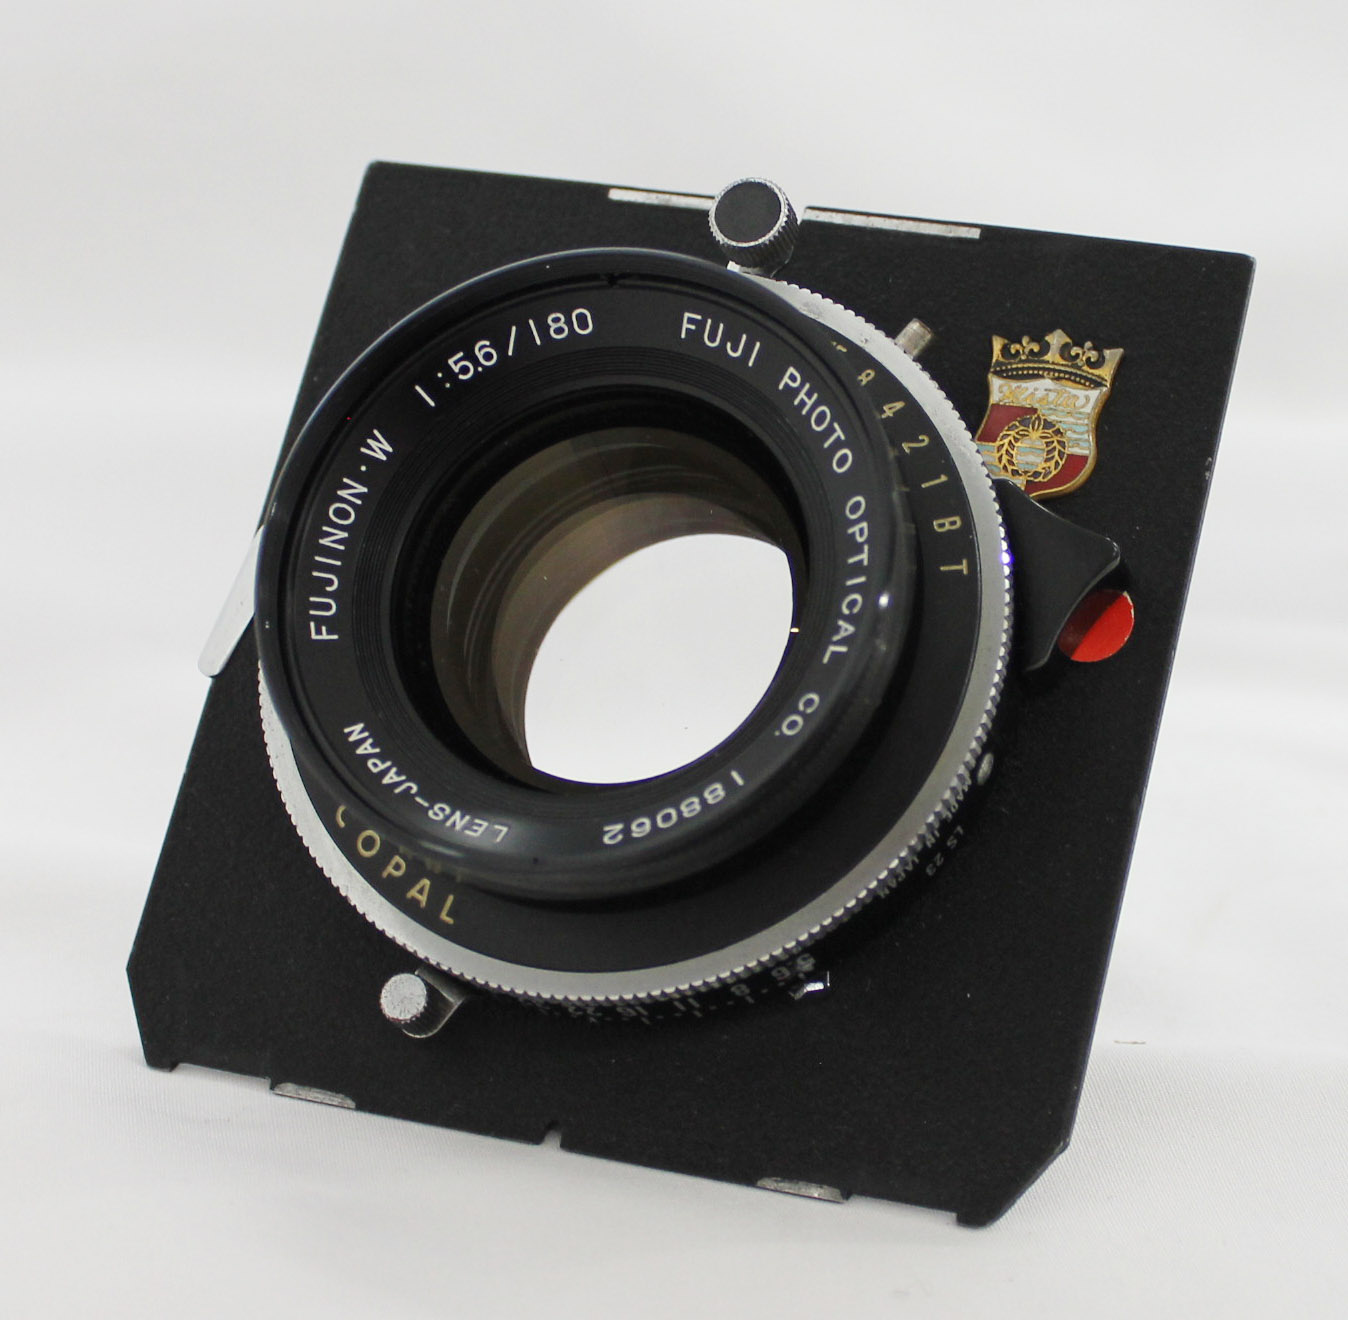 Japan Used Camera Shop | [Excellent+++++] Fuji Fujinon W 180mm F/5.6 4x5 Large Format Lens with Copal Shutter from Japan